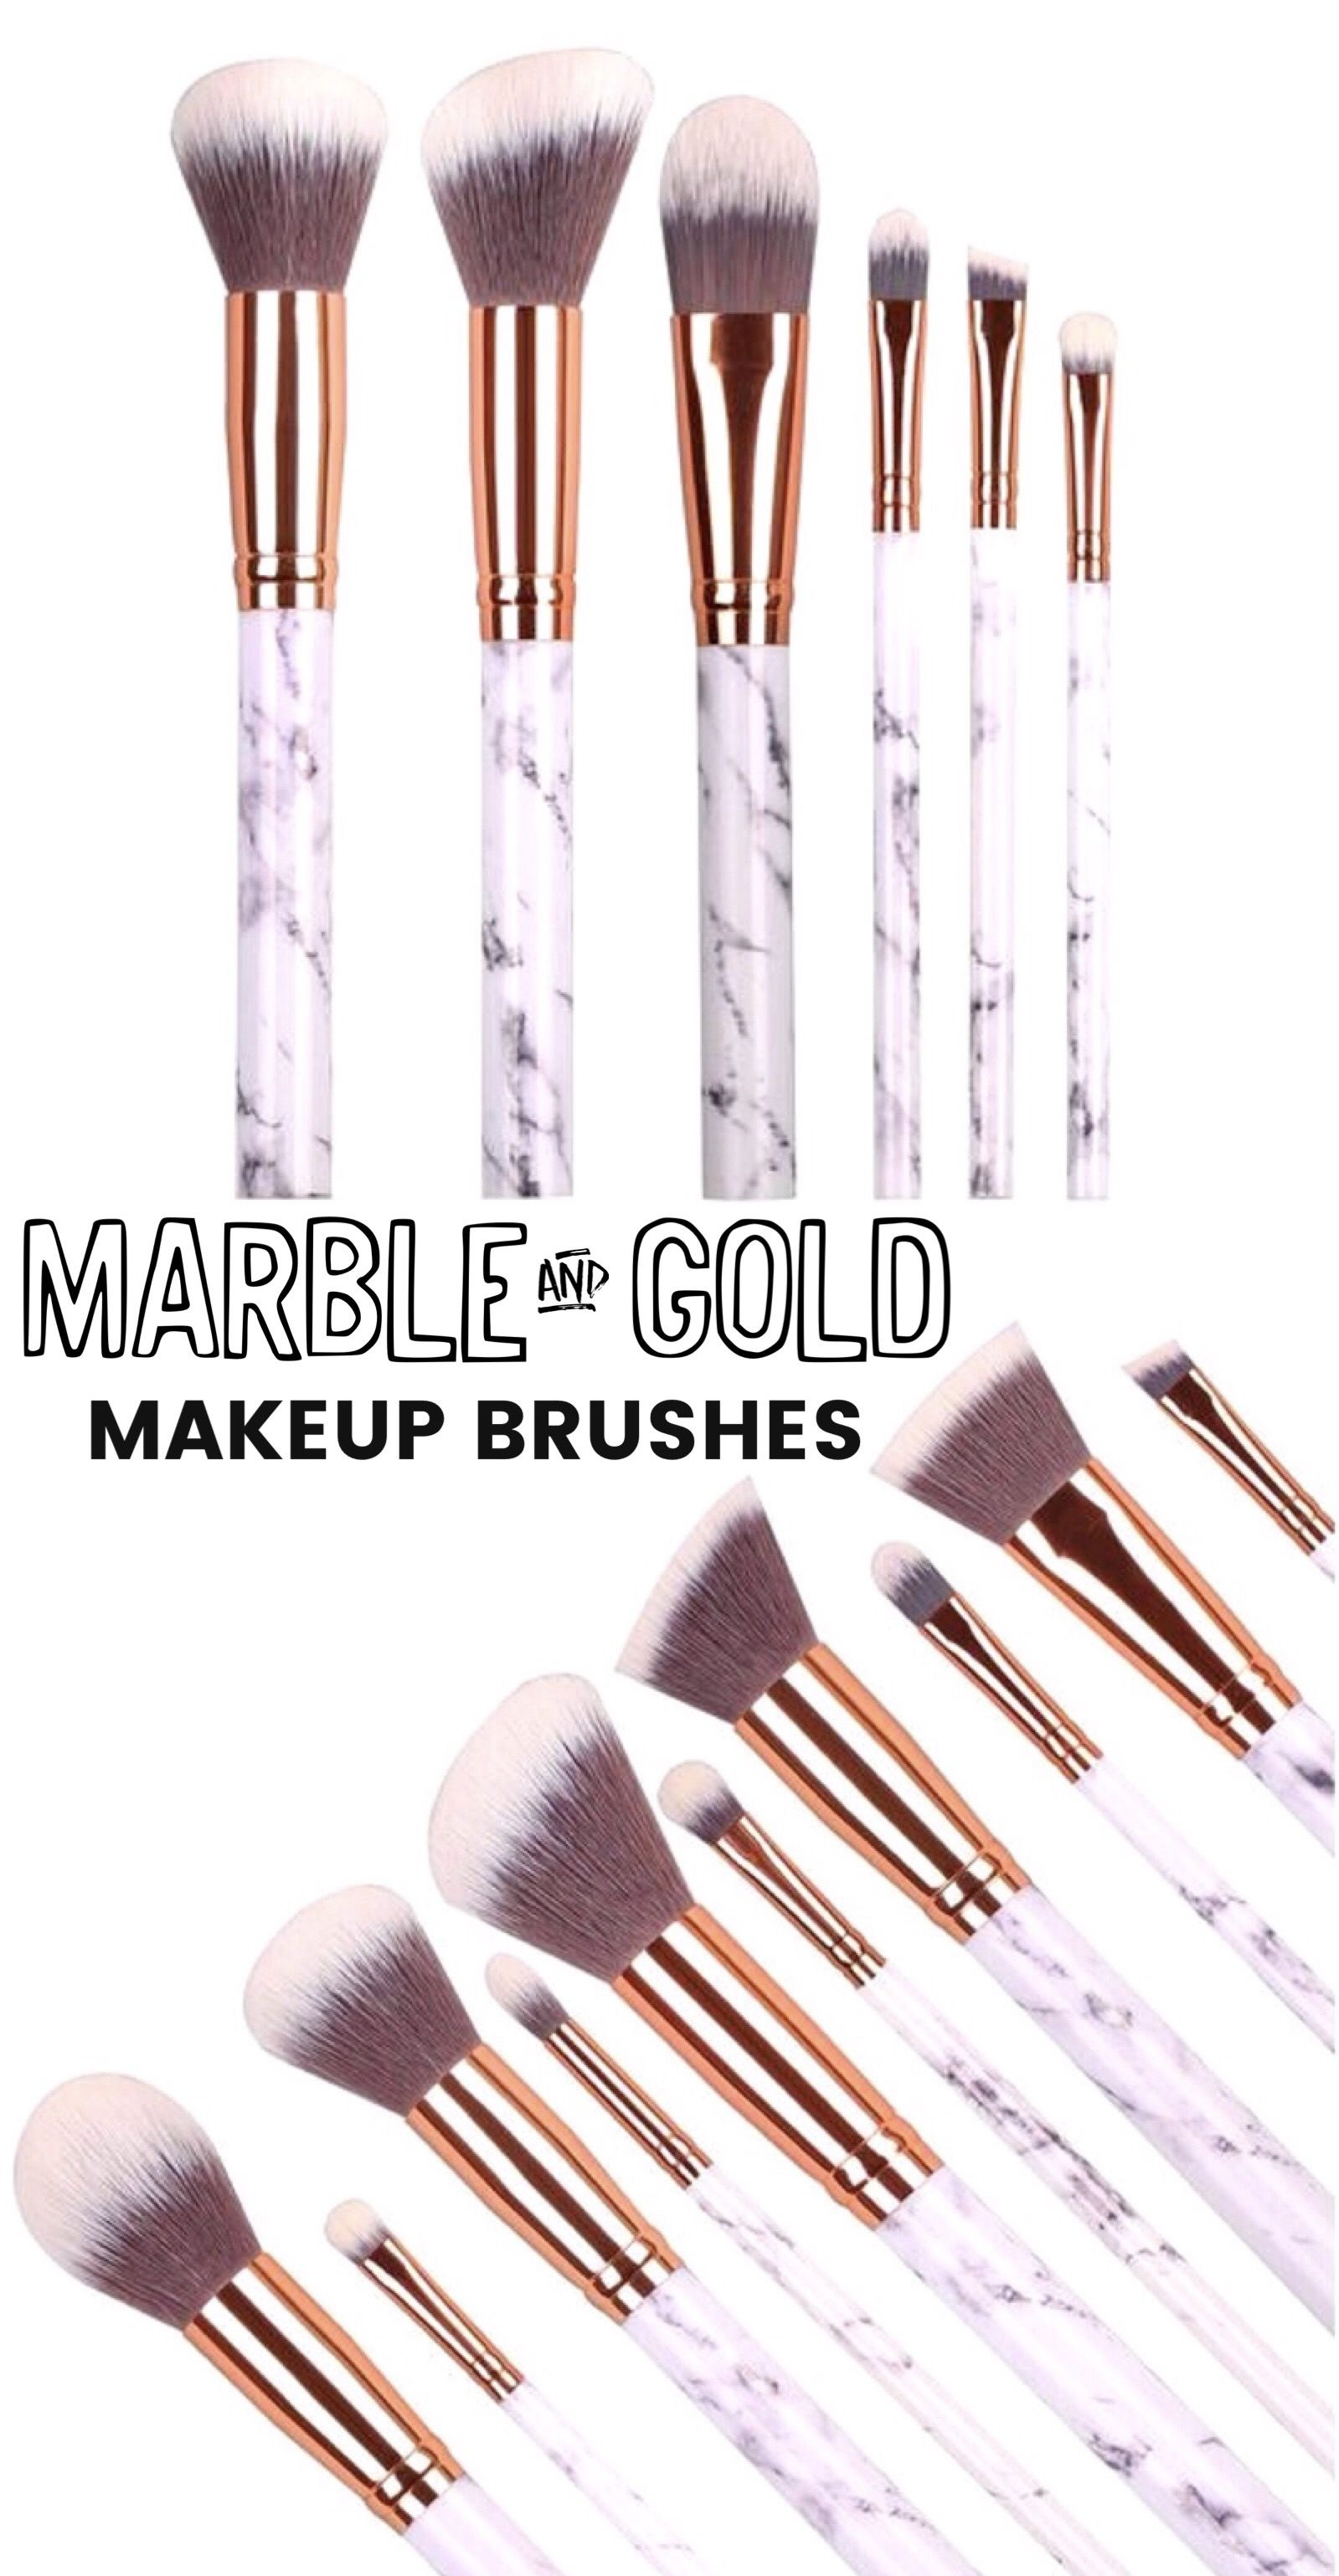 Marble And Gold luxury makeup brush set perfect for